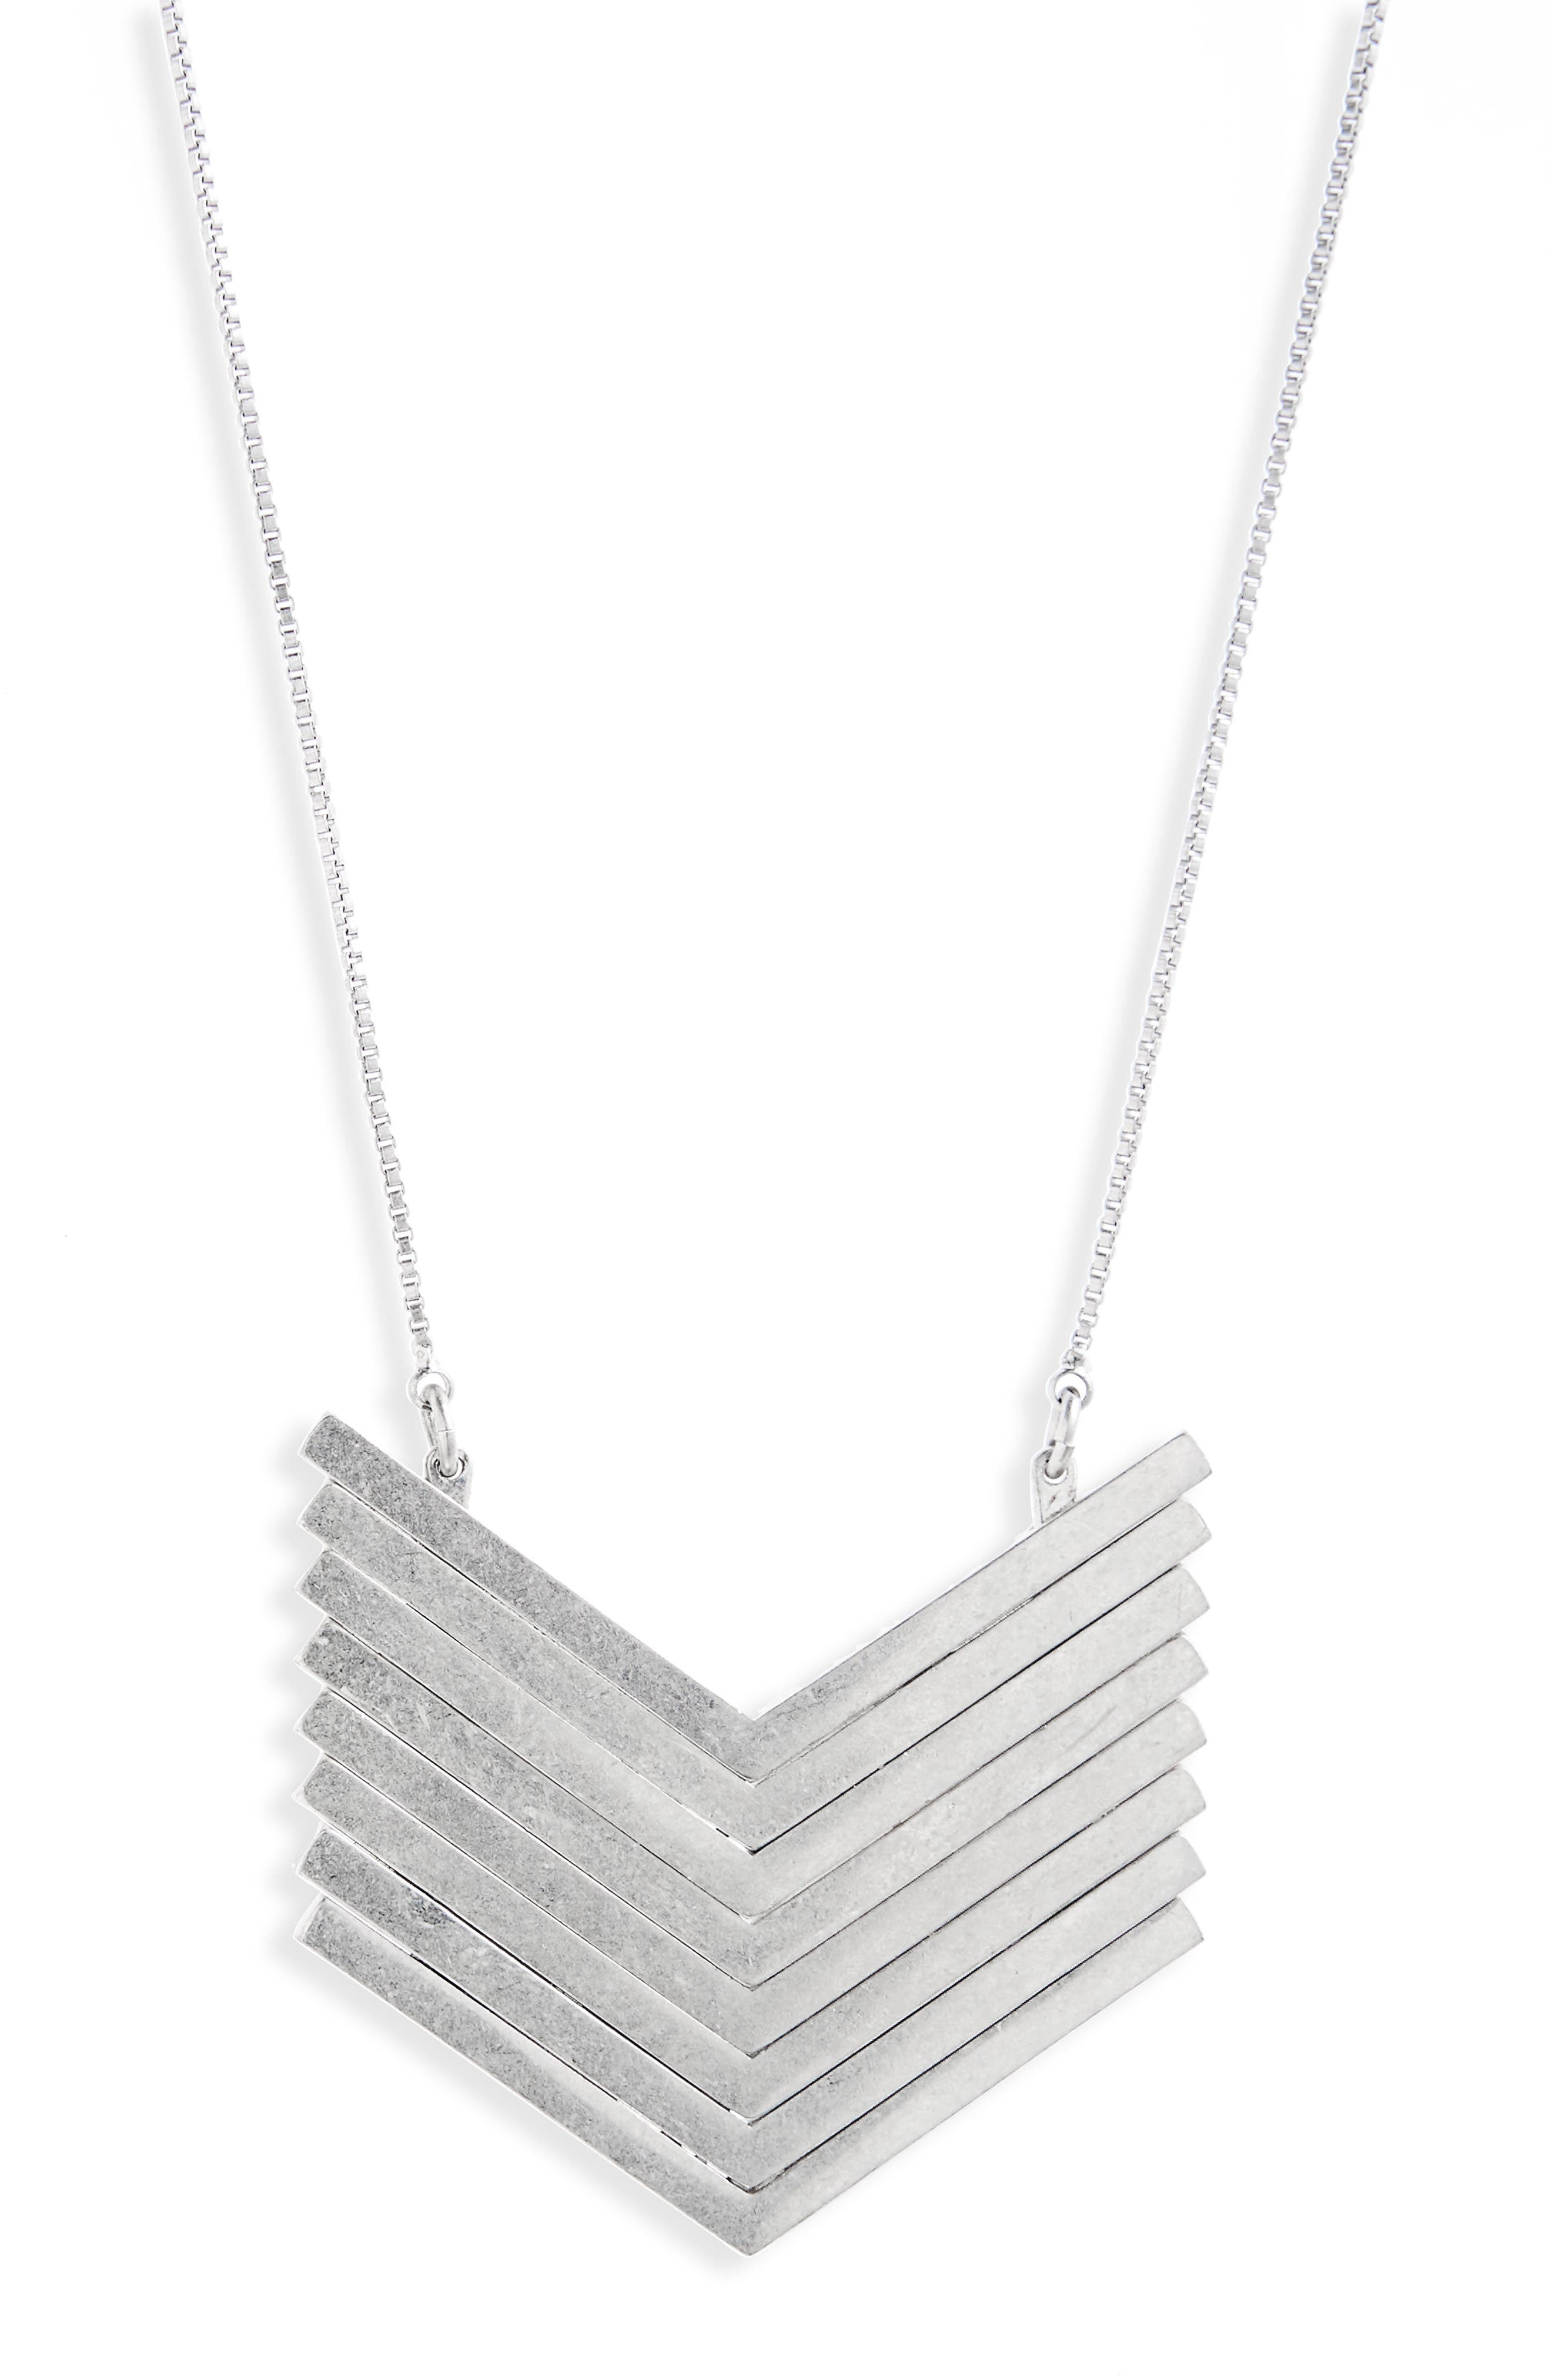 Arrowstack Necklace,                         Main,                         color, LIGHT SILVER OX